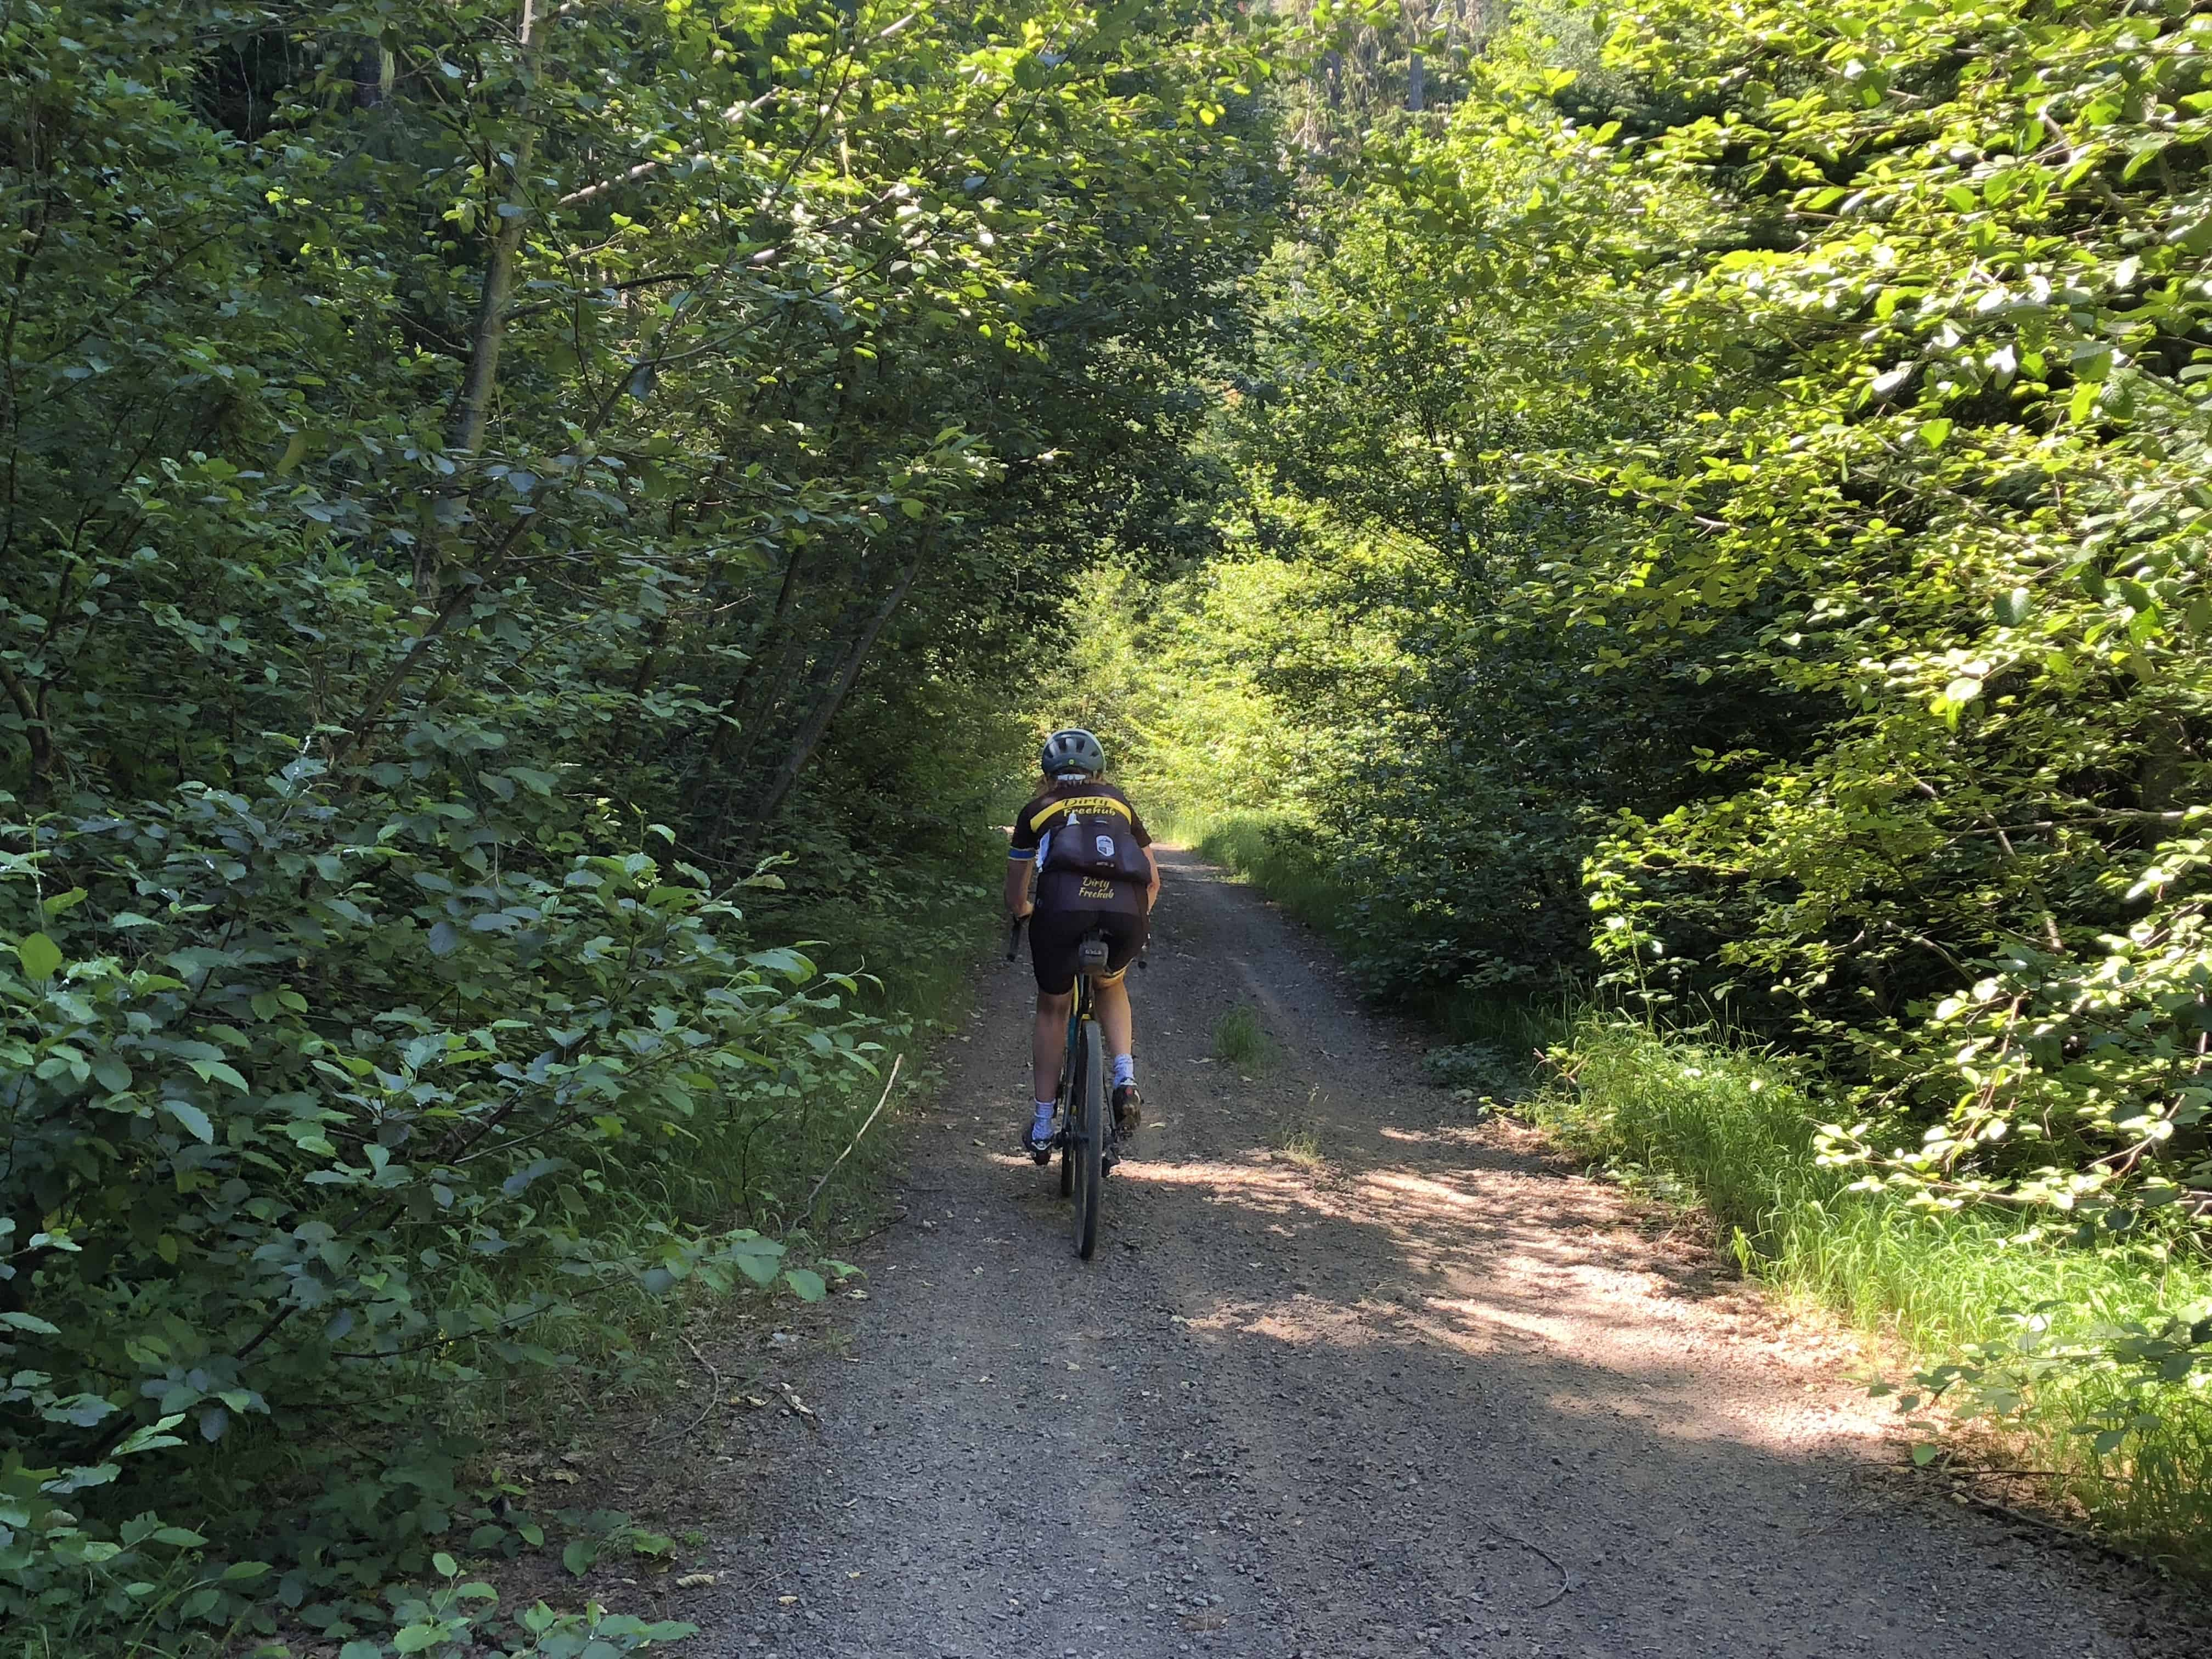 Gravel cyclist in Willamette National Forest